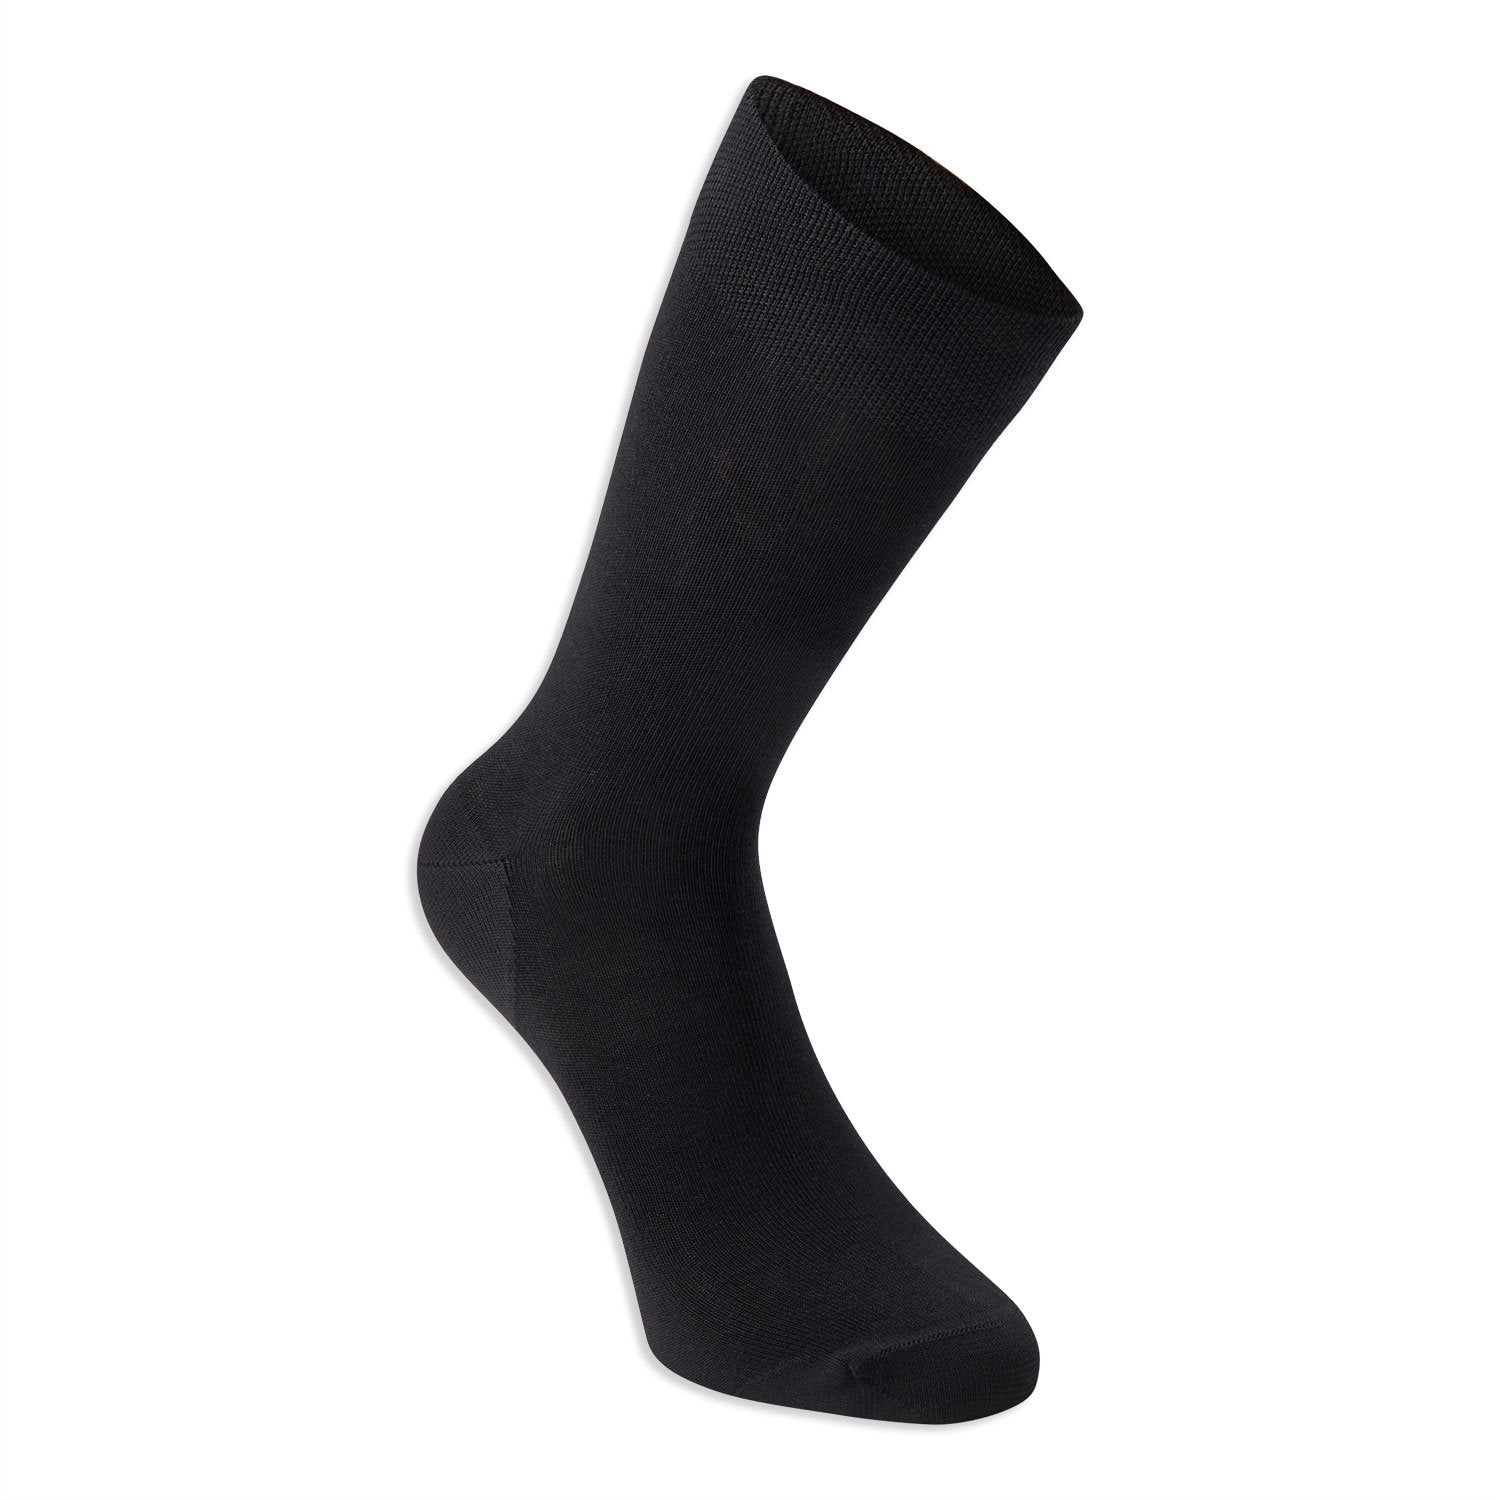 Black | Deerhunter Bamboo Socks | 3 Pack